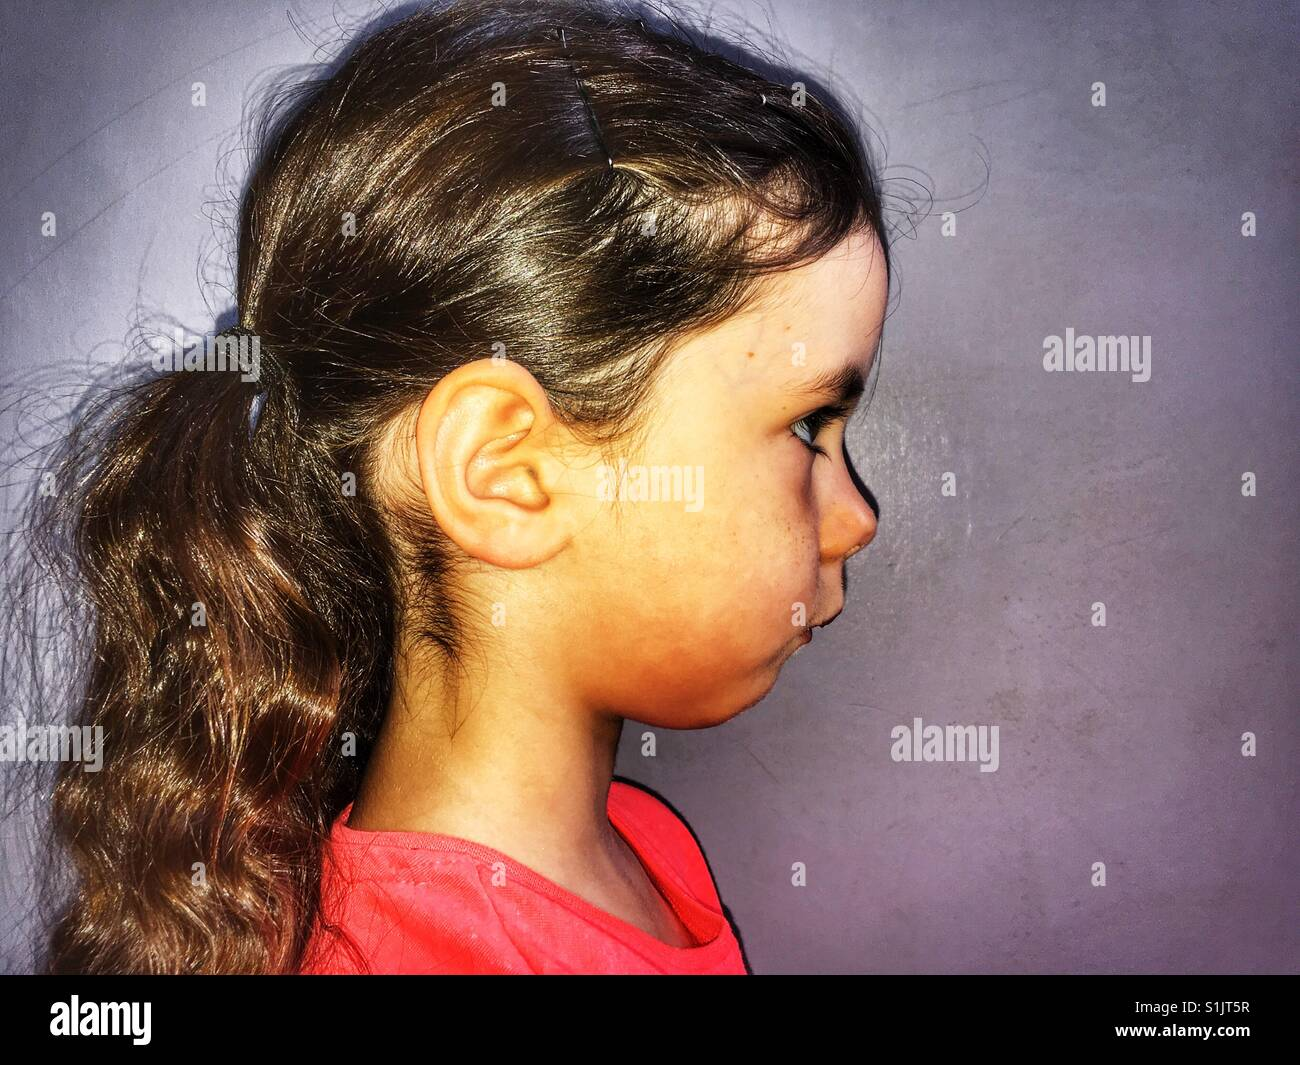 Girl wearing her hair in ponytails - Stock Image